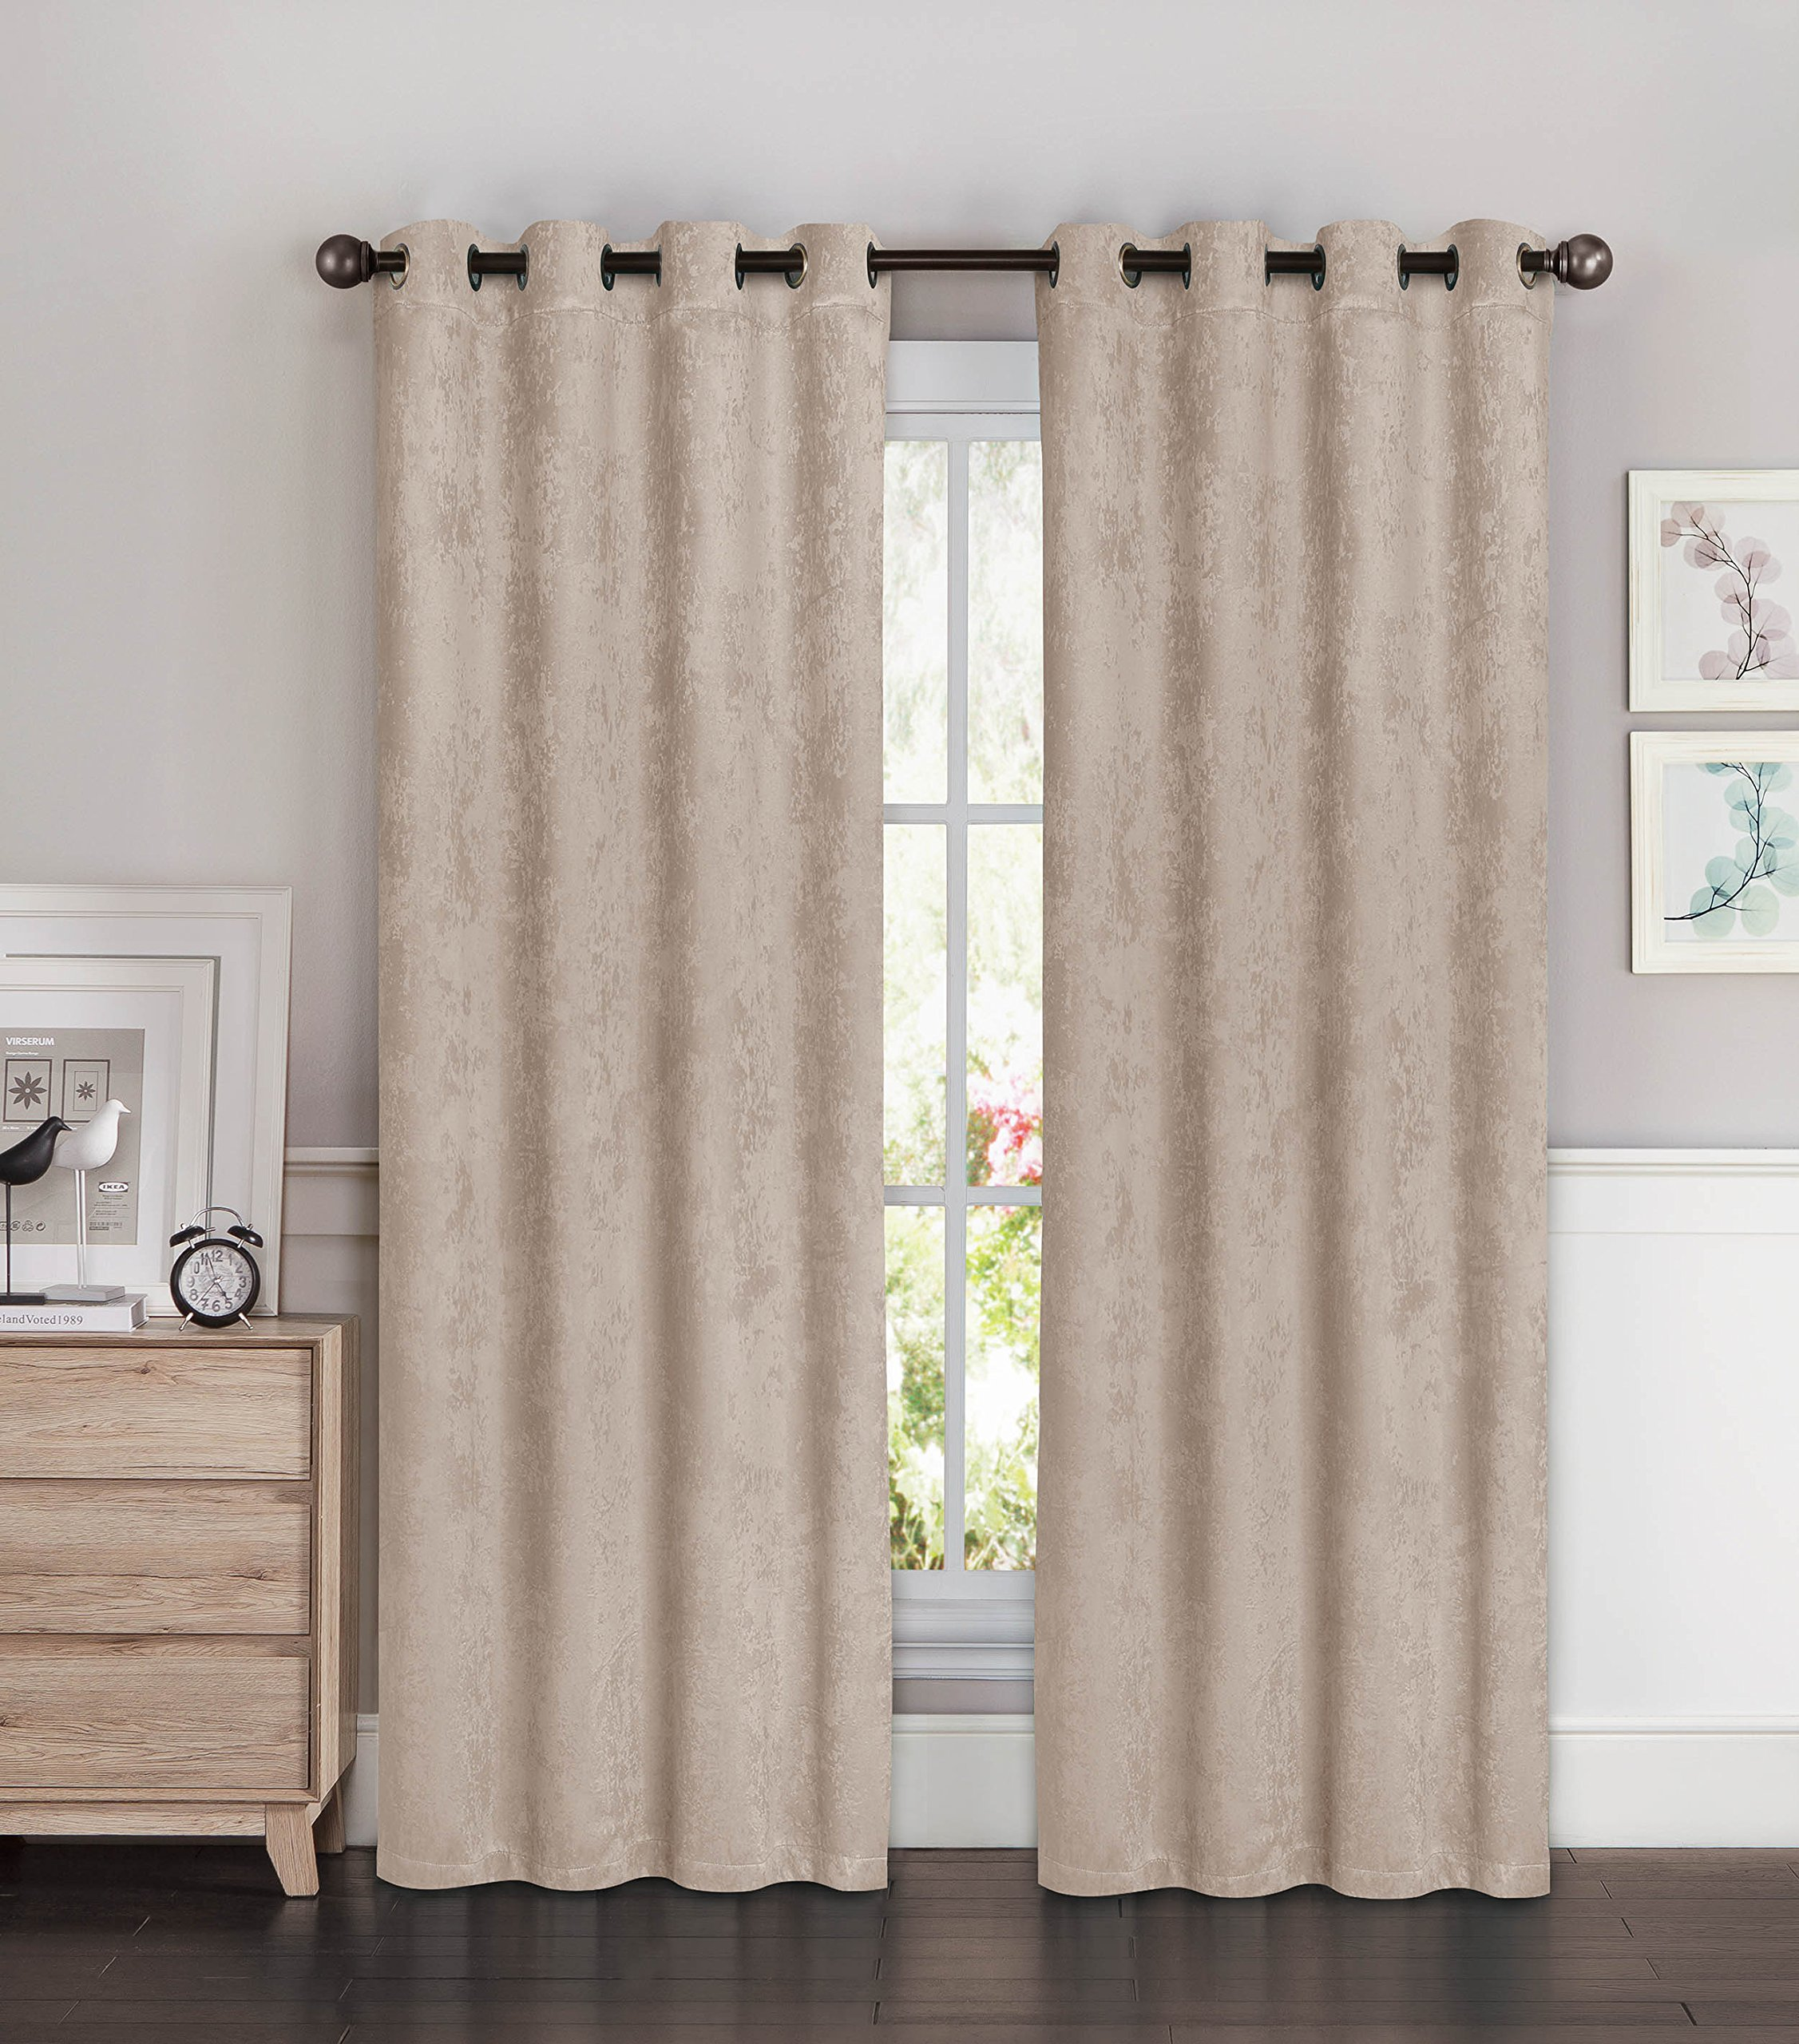 Bella Luna Faux Suede Room Darkening Extra Wide 108 x 84 in. Grommet Curtain Panel Pair, Taupe - Pair includes (2) 54 in. x 84 in. curtain panels (total width coverage: 108 in.) Each lined extra-wide panel features (8) gunmetal-colored grommets Room-darkening thermal lining is energy saving, light blocking and noise reducing - living-room-soft-furnishings, living-room, draperies-curtains-shades - 91YNXsXM2JL -